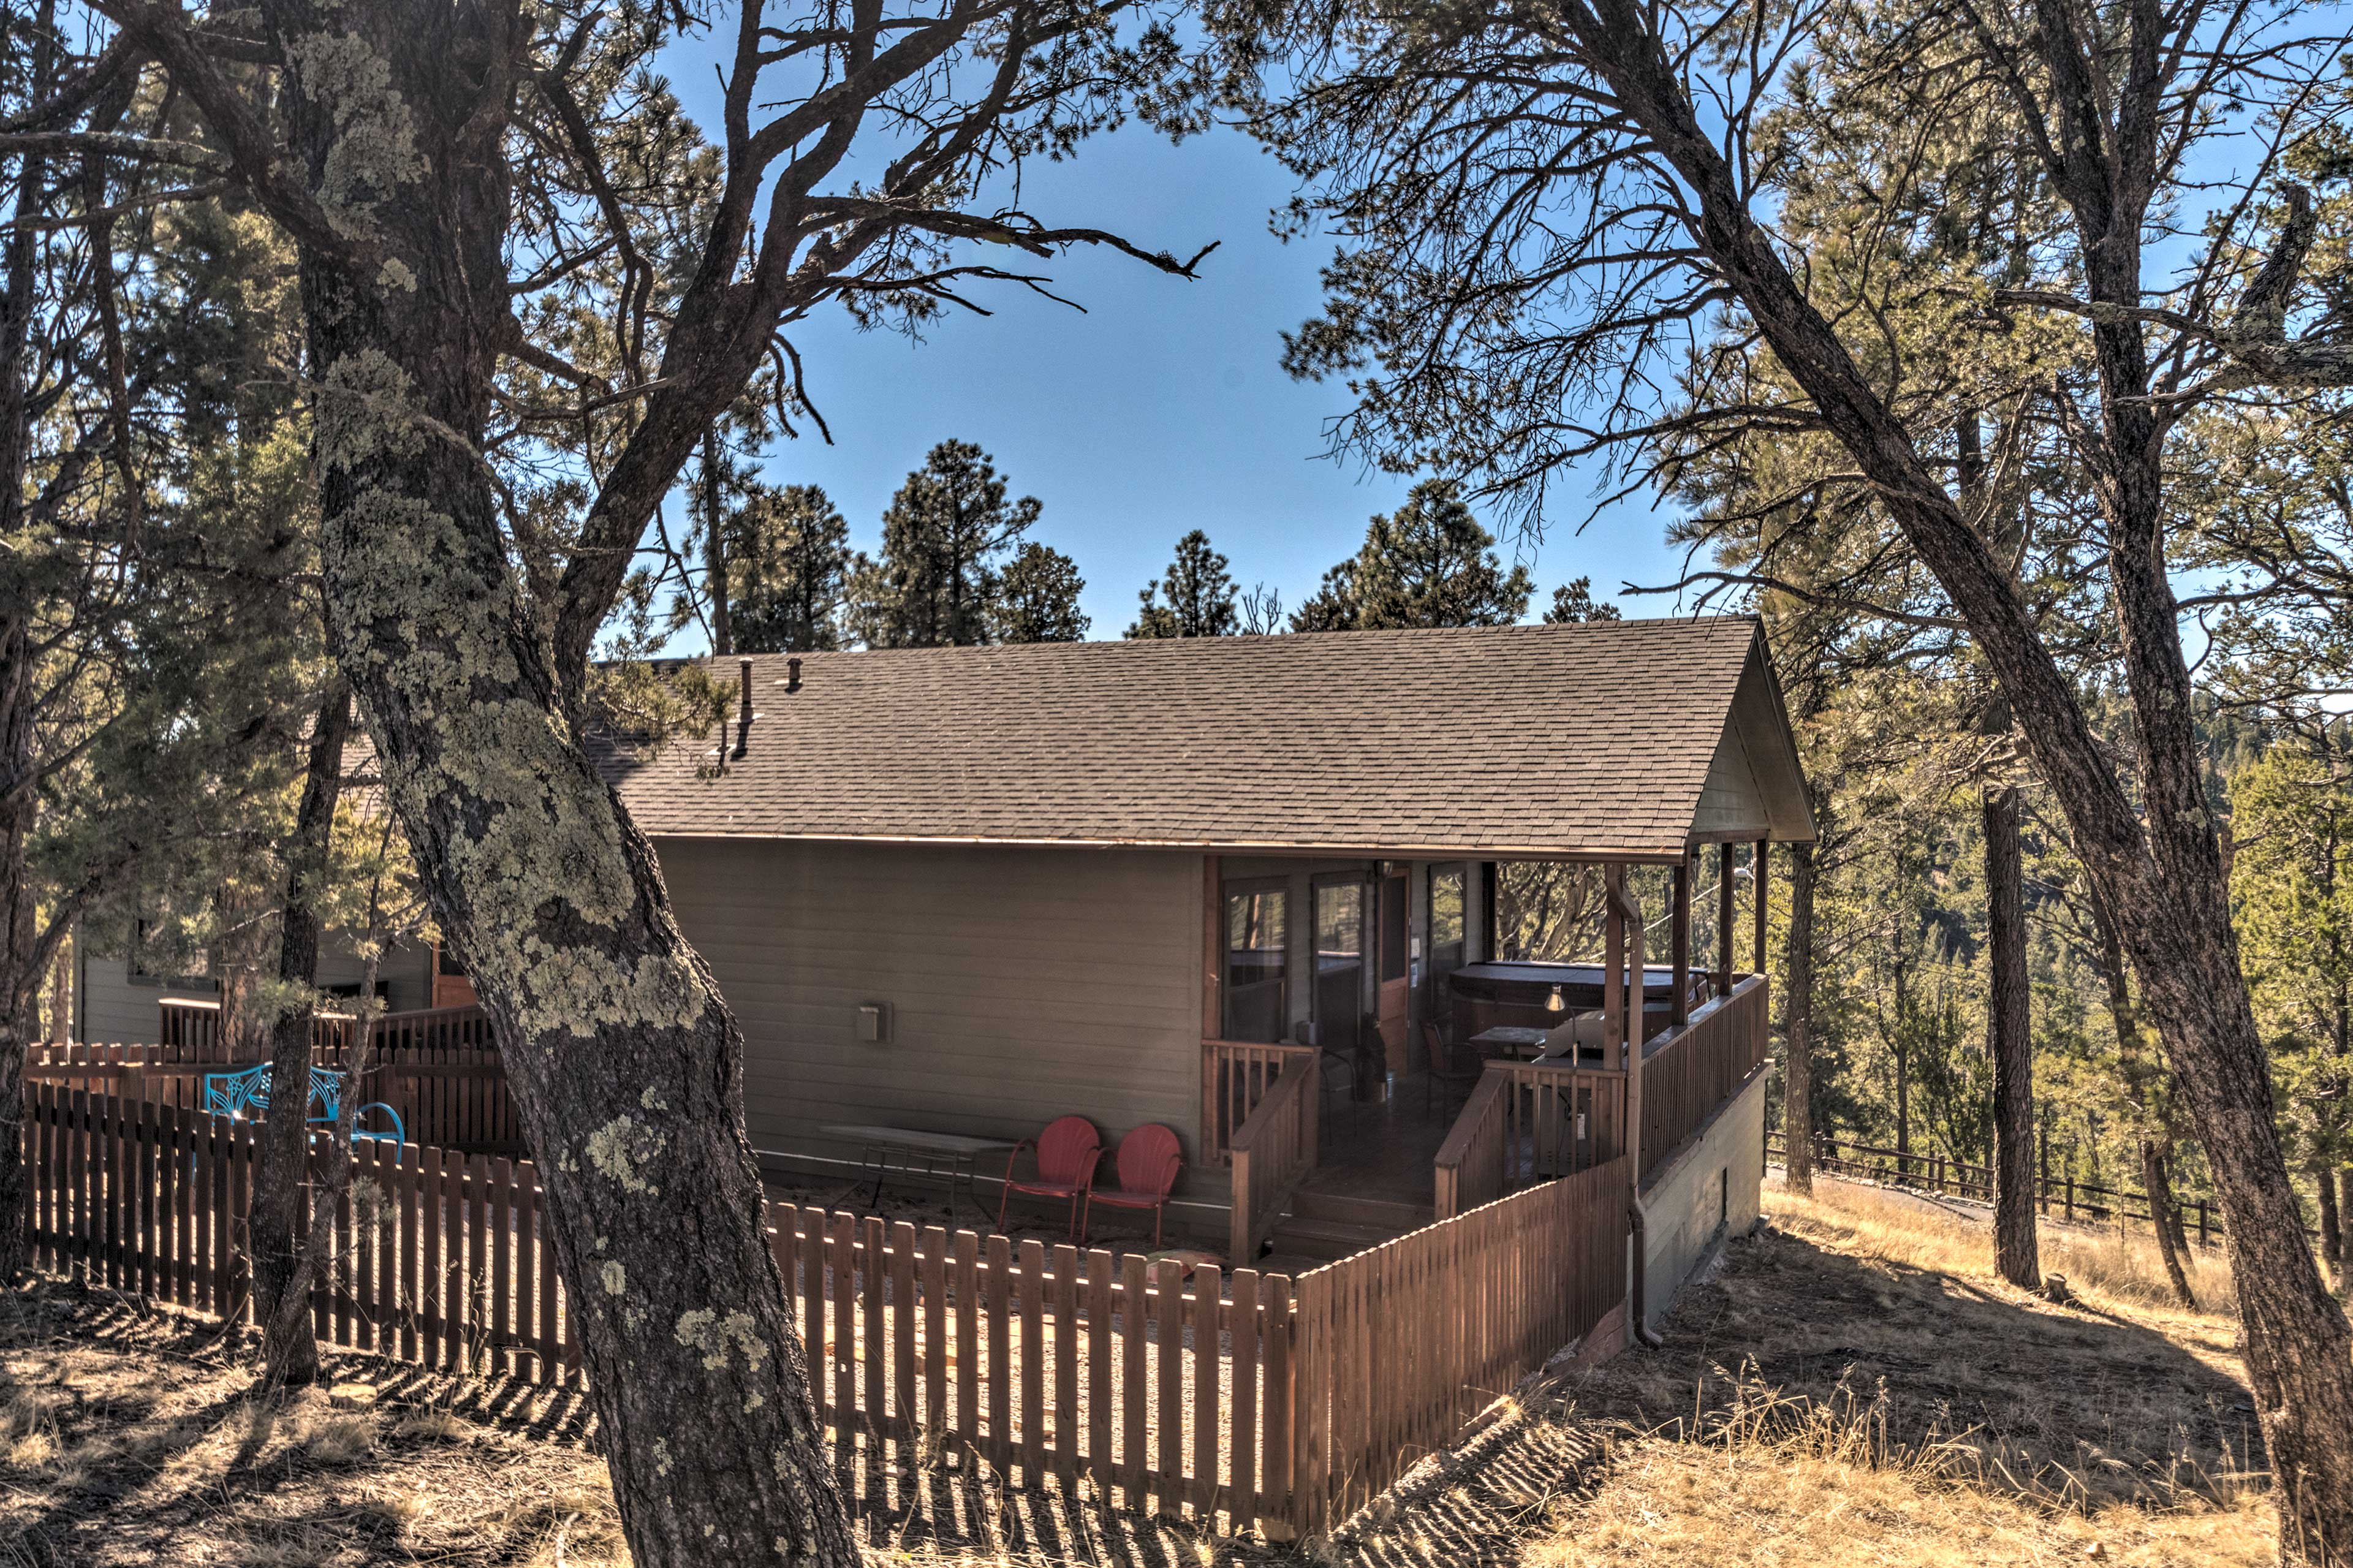 This home is located just 2 miles from downtown and 5 miles to Grindstone Lake.